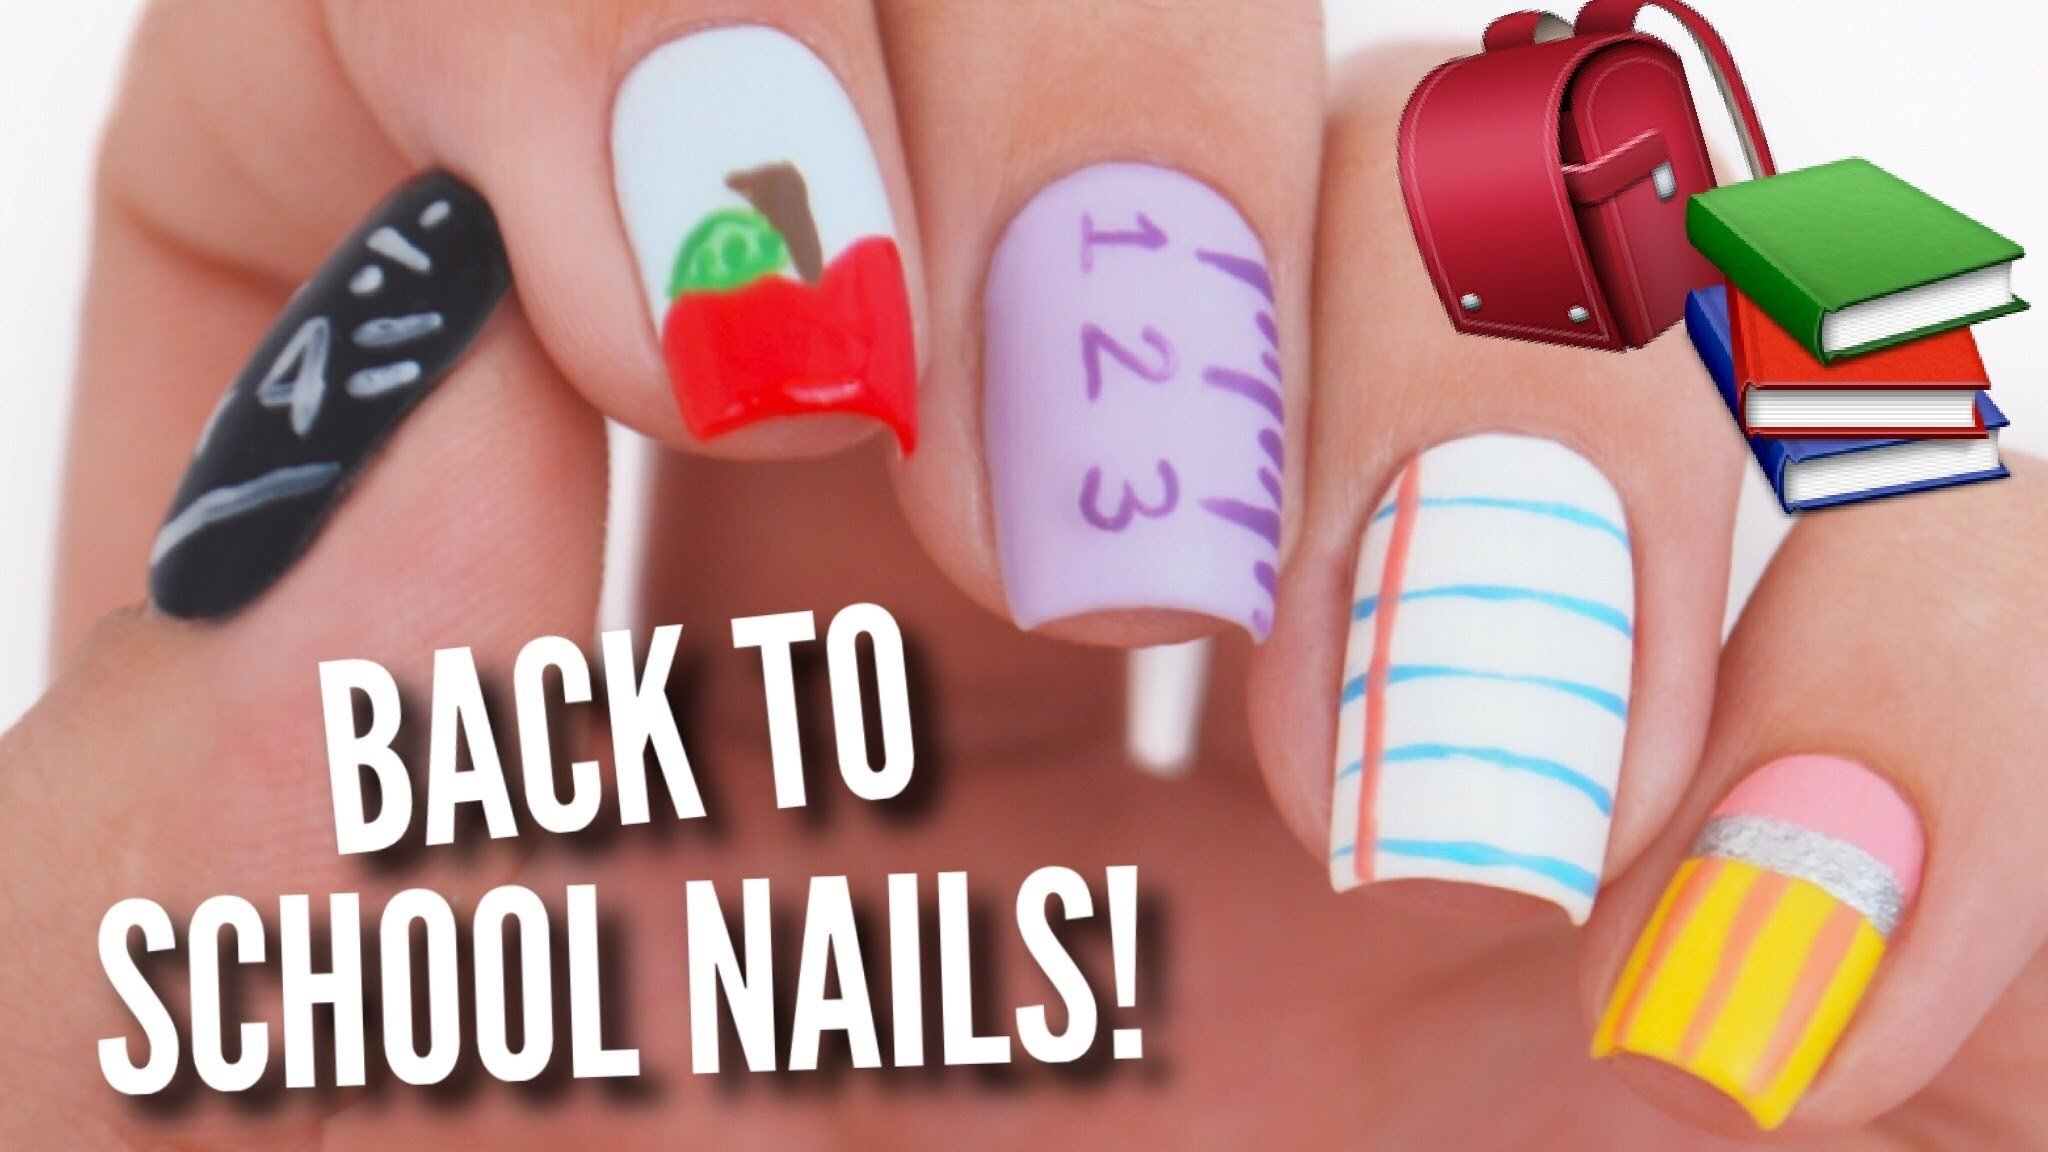 5 back to school nail art designs! - youtube